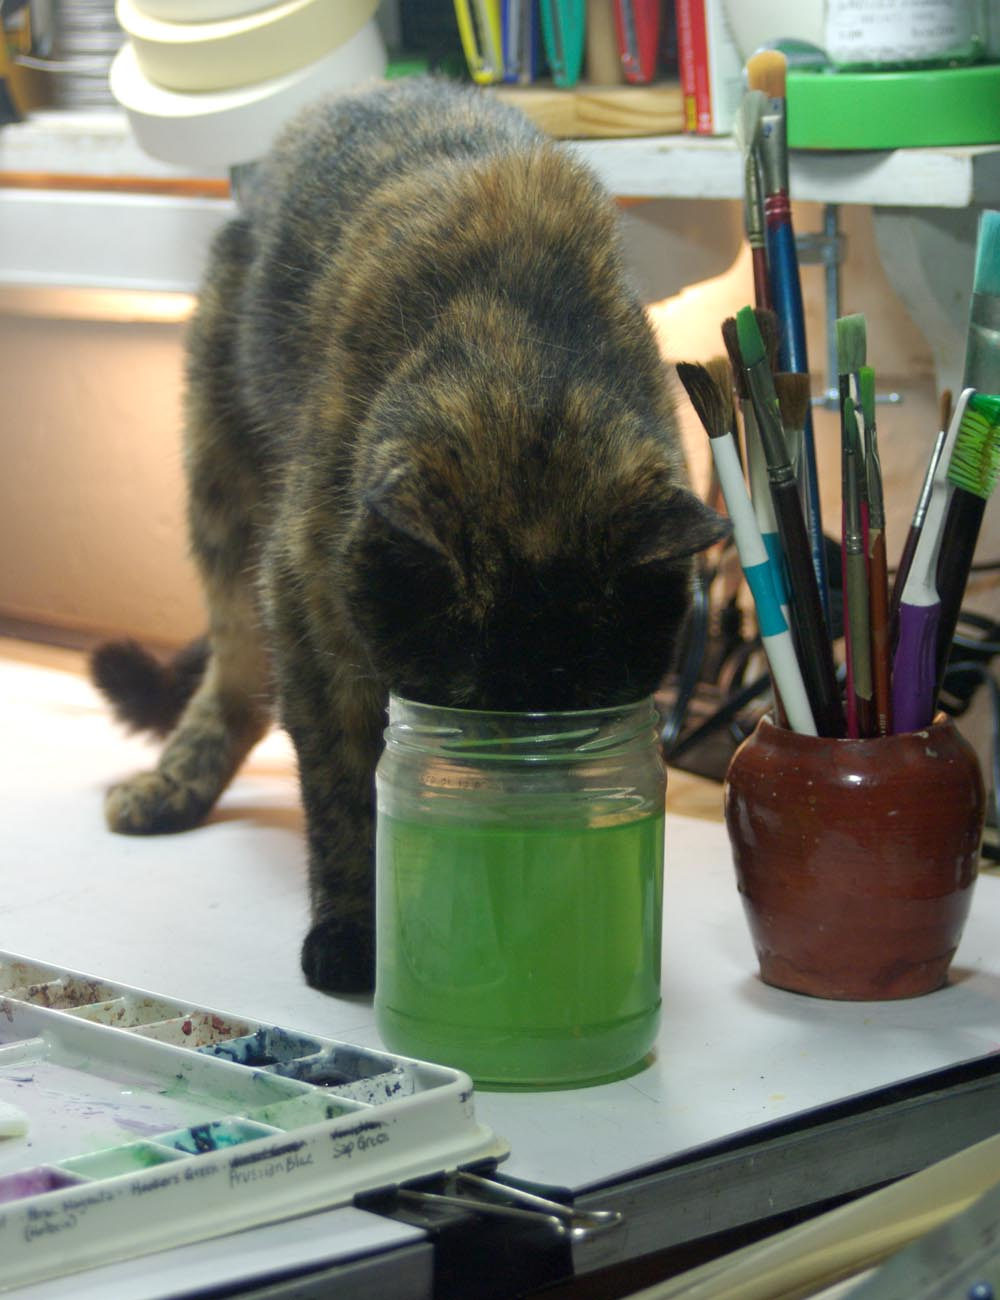 tortoiseshell cat drinking out of green water in jar